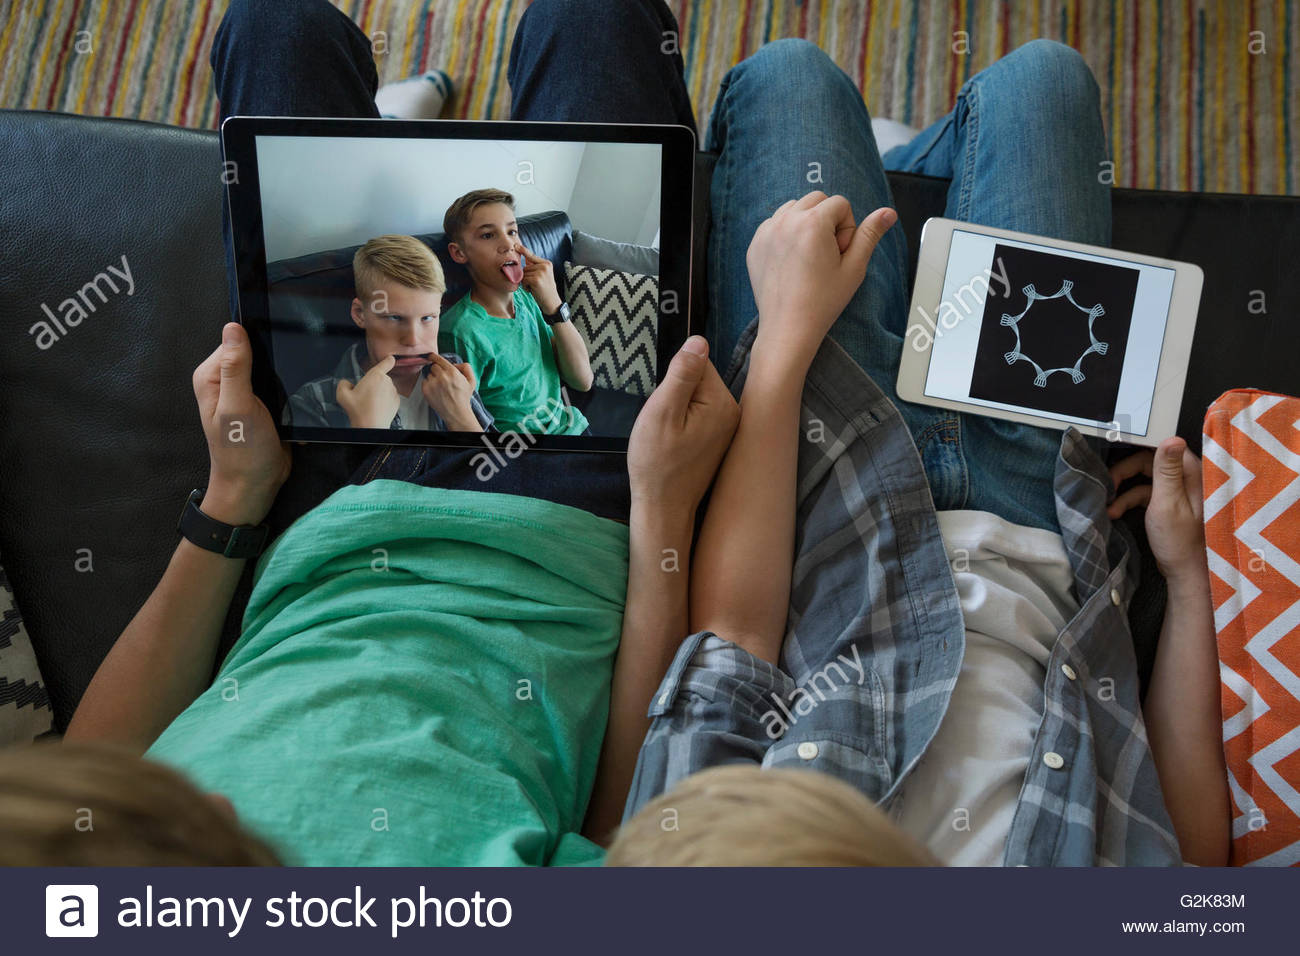 Boys taking silly selfie with digital tablet - Stock Image